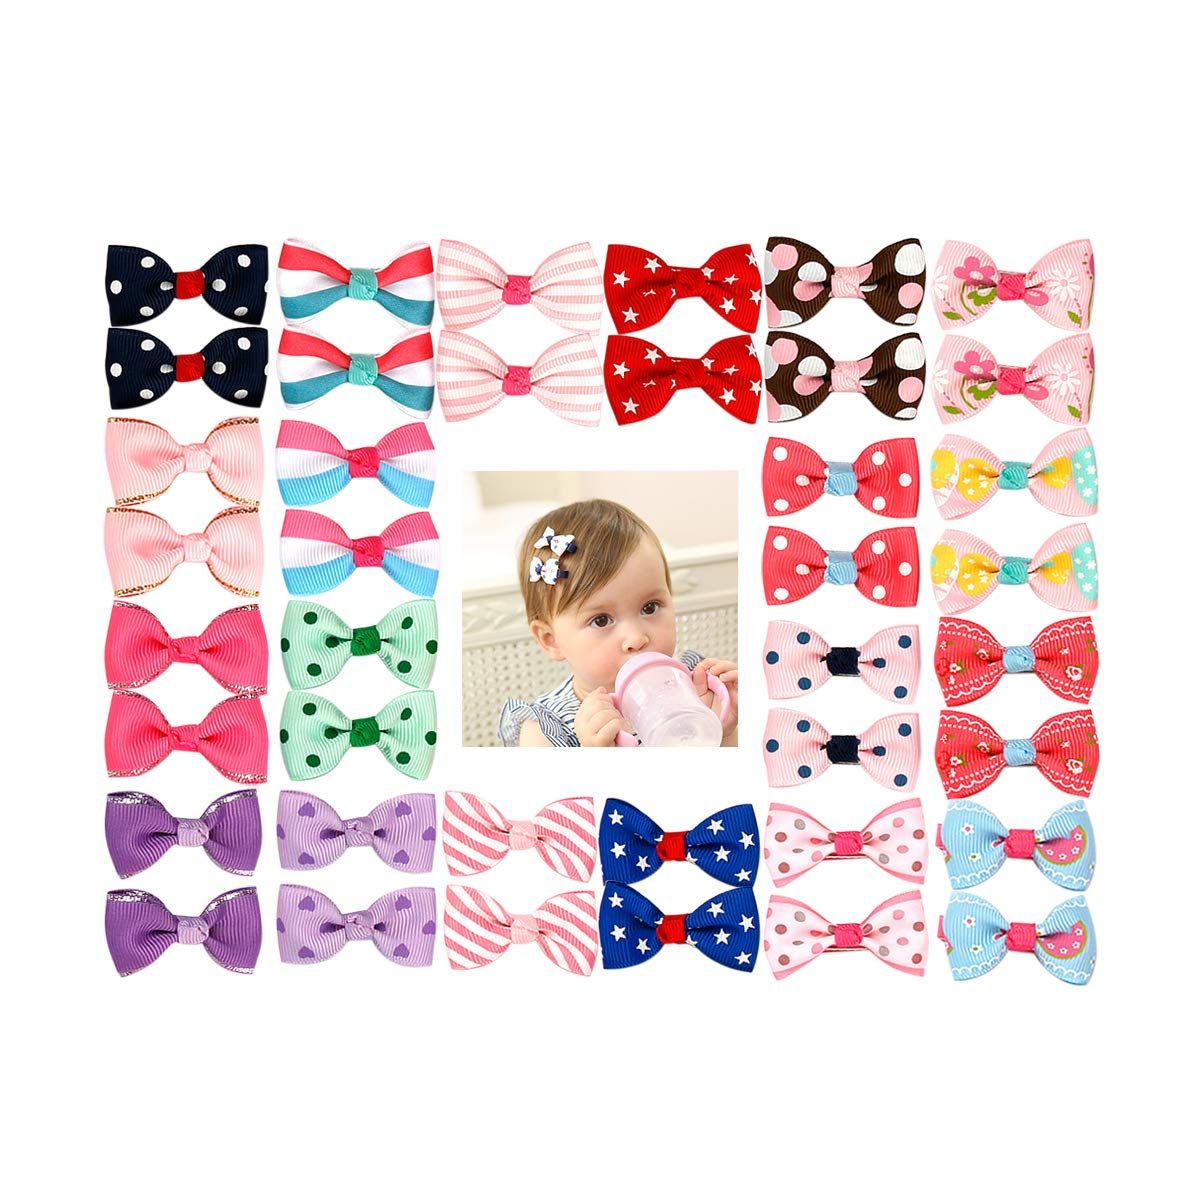 Munax 40 pcs 1.8'' Baby Girls Ribbon Hair Bow Clips Printed Pattern Barrettes for Girl Teens Kids Babies Toddlers(20 Pairs)